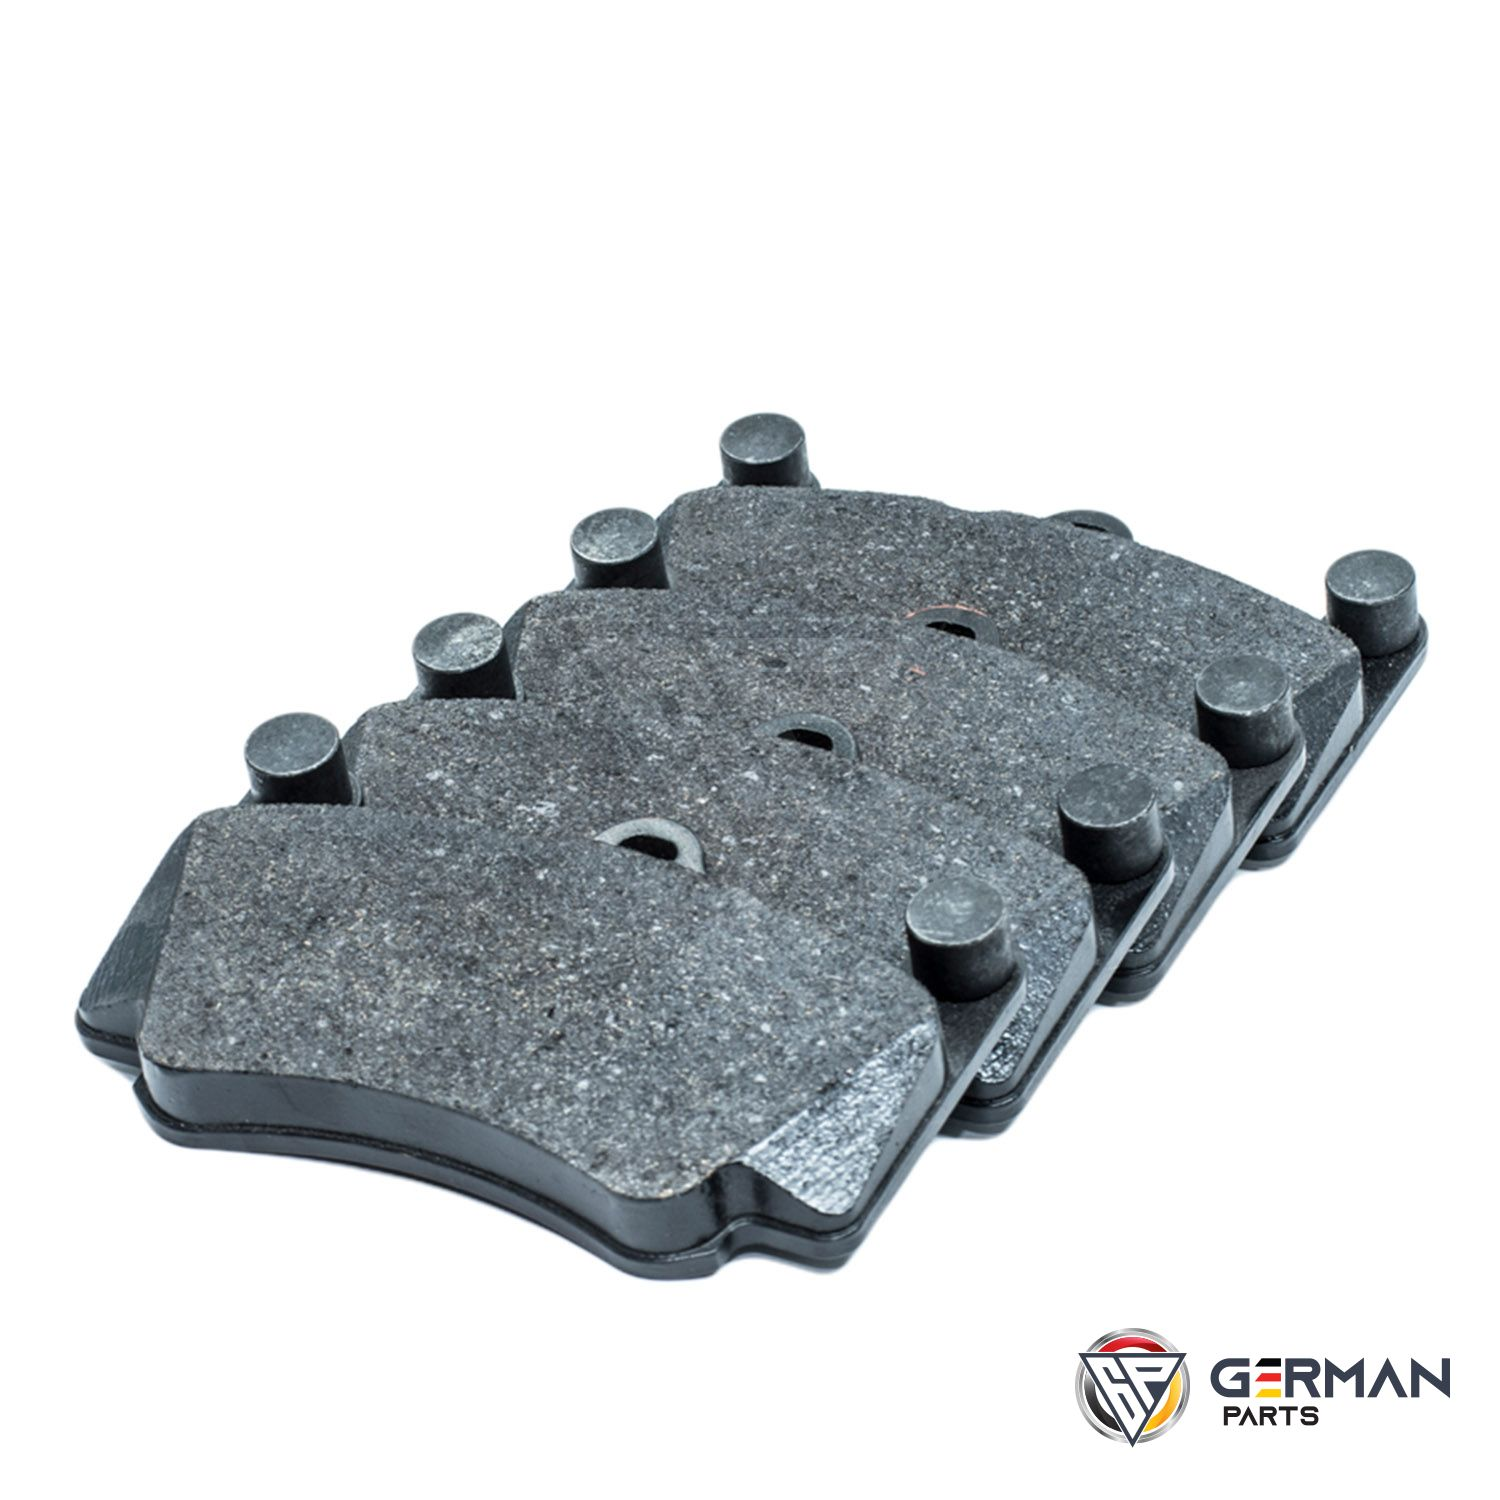 Buy Porsche Front Brake Pad Set 99735193903 - German Parts